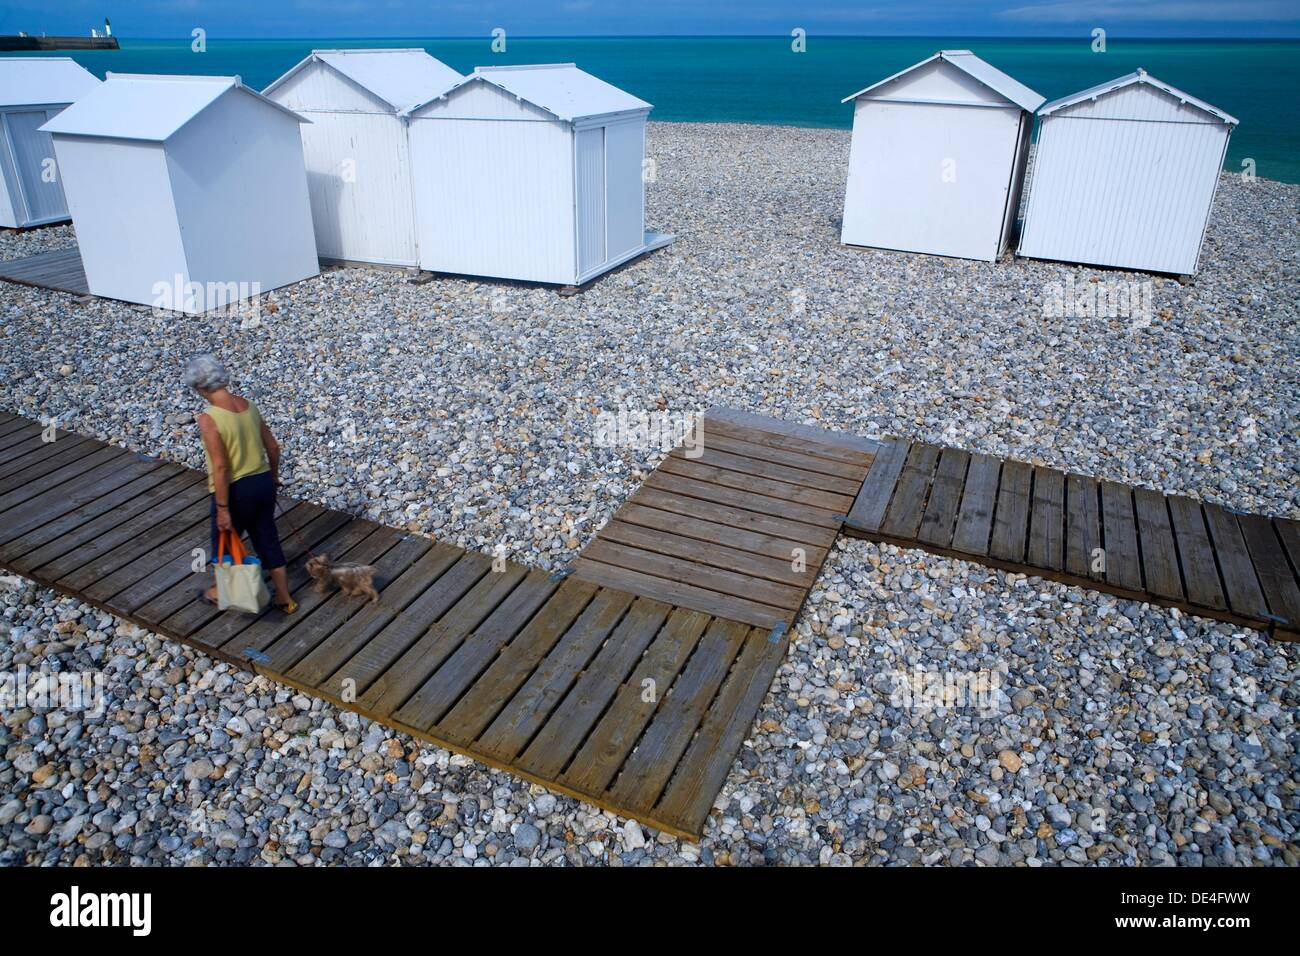 beach changing room stockfotos beach changing room bilder alamy. Black Bedroom Furniture Sets. Home Design Ideas